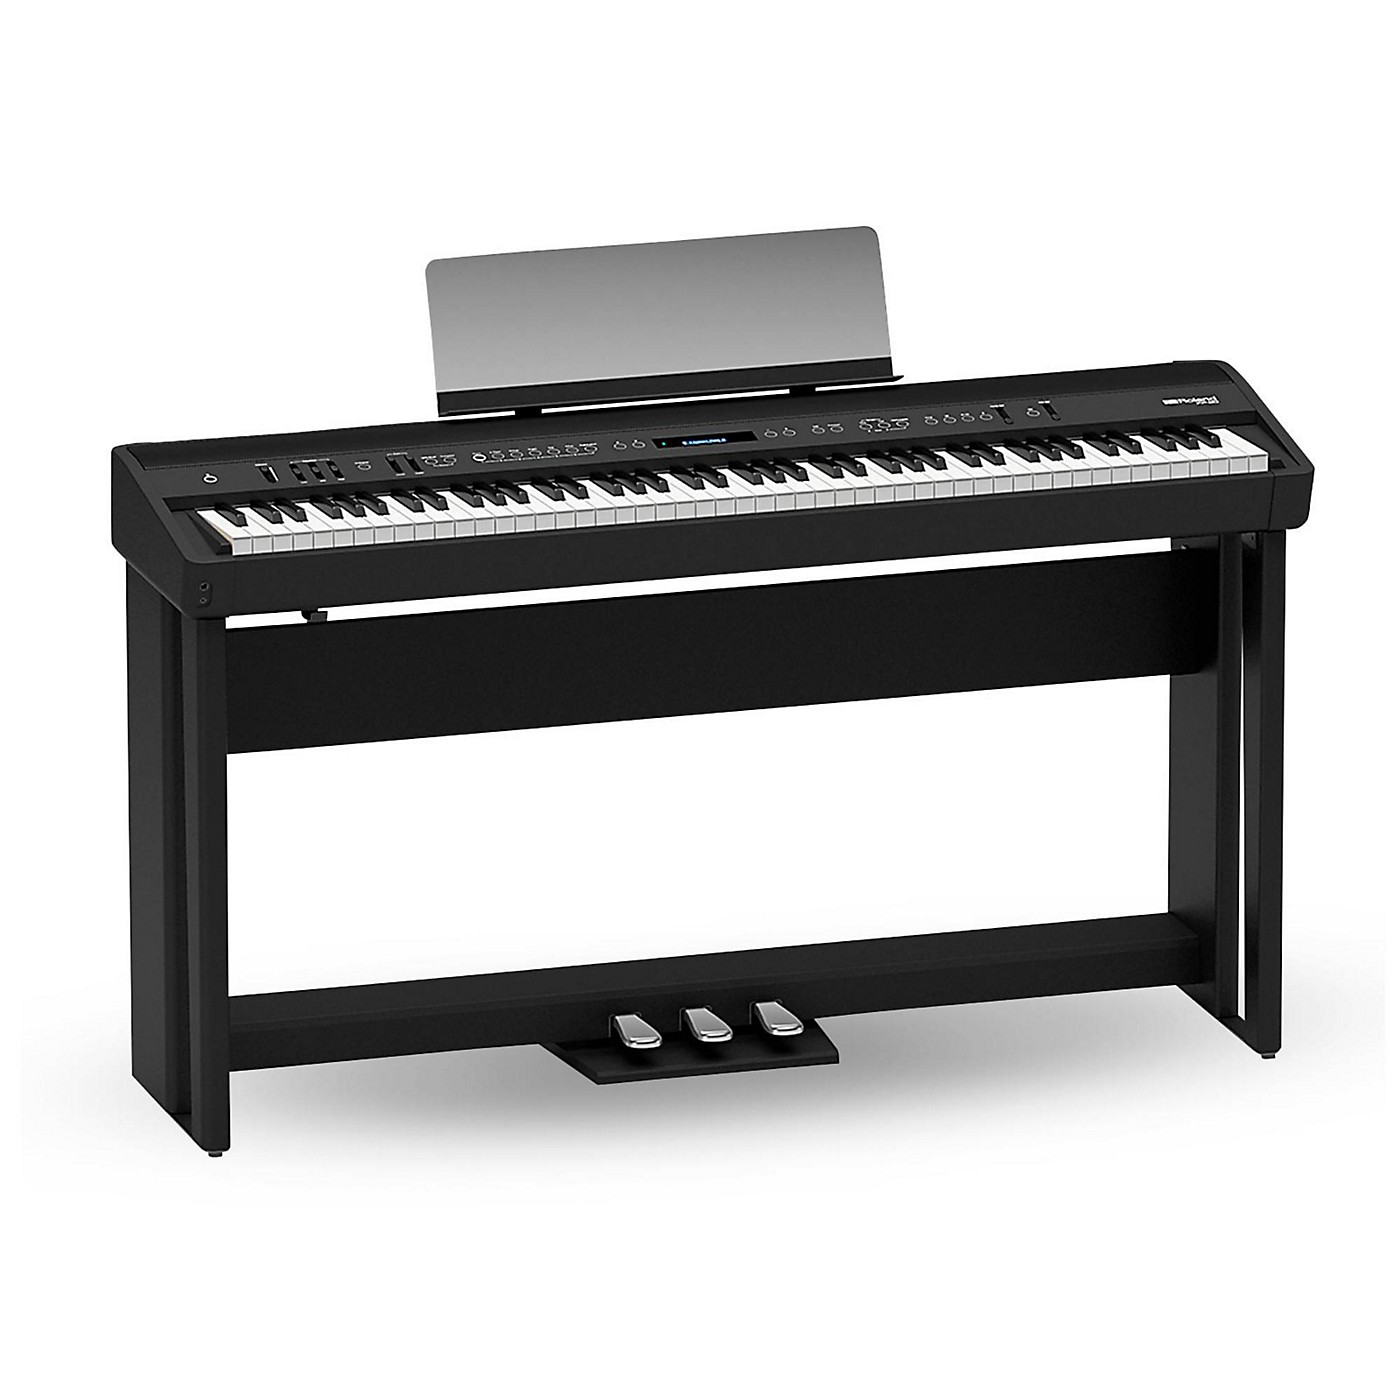 Roland FP-90 Digital Piano Black With Stand and Pedal Board thumbnail